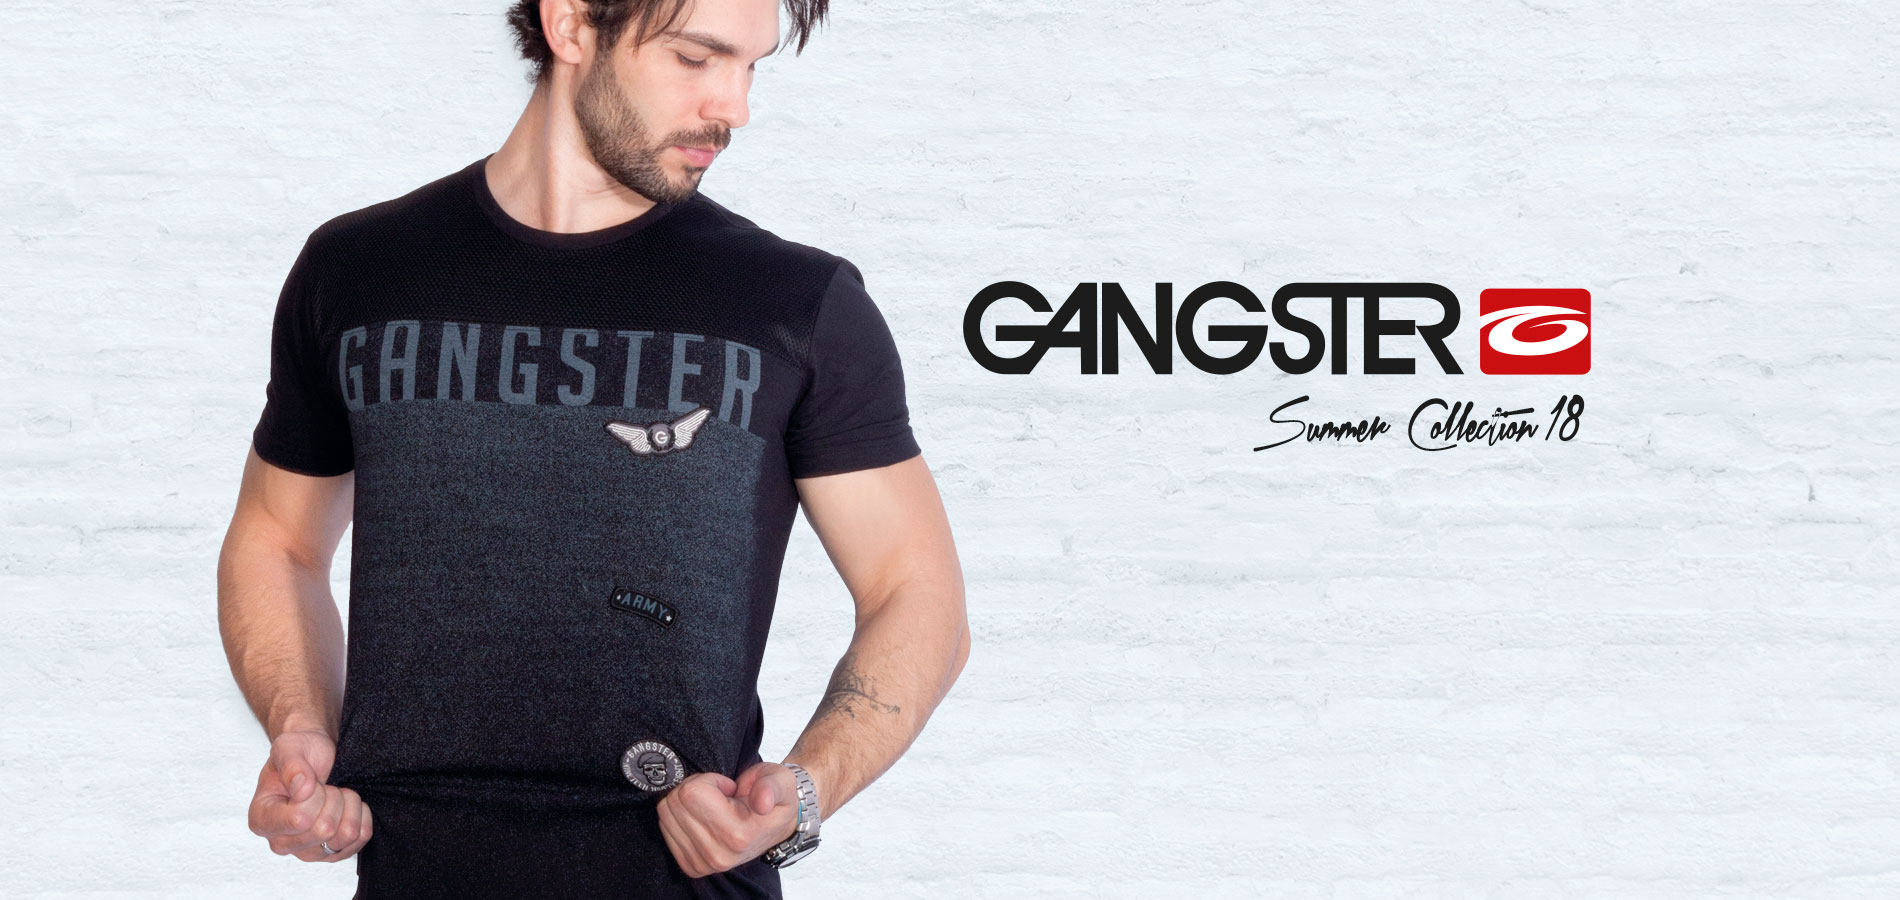 Gangster 2018 Summer Collection